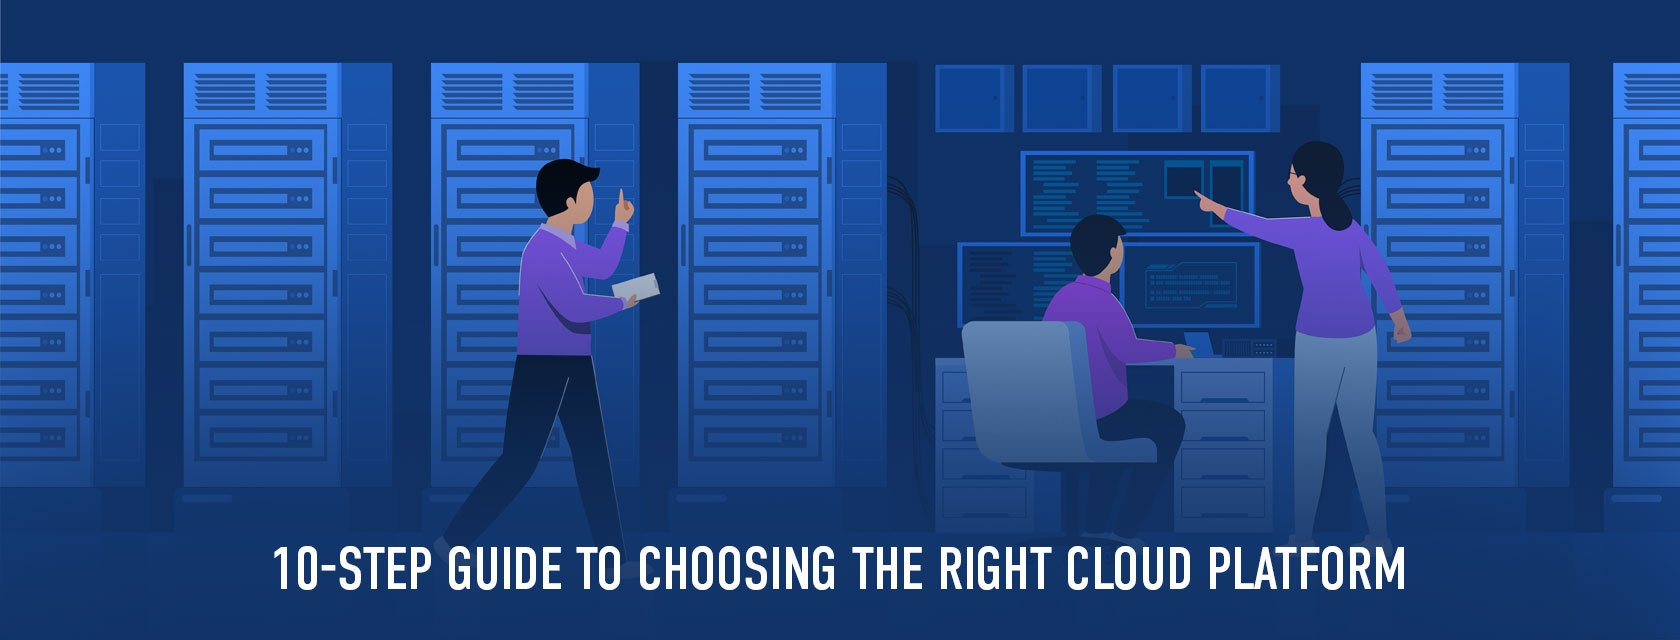 10 things to consider while choosing a cloud platform